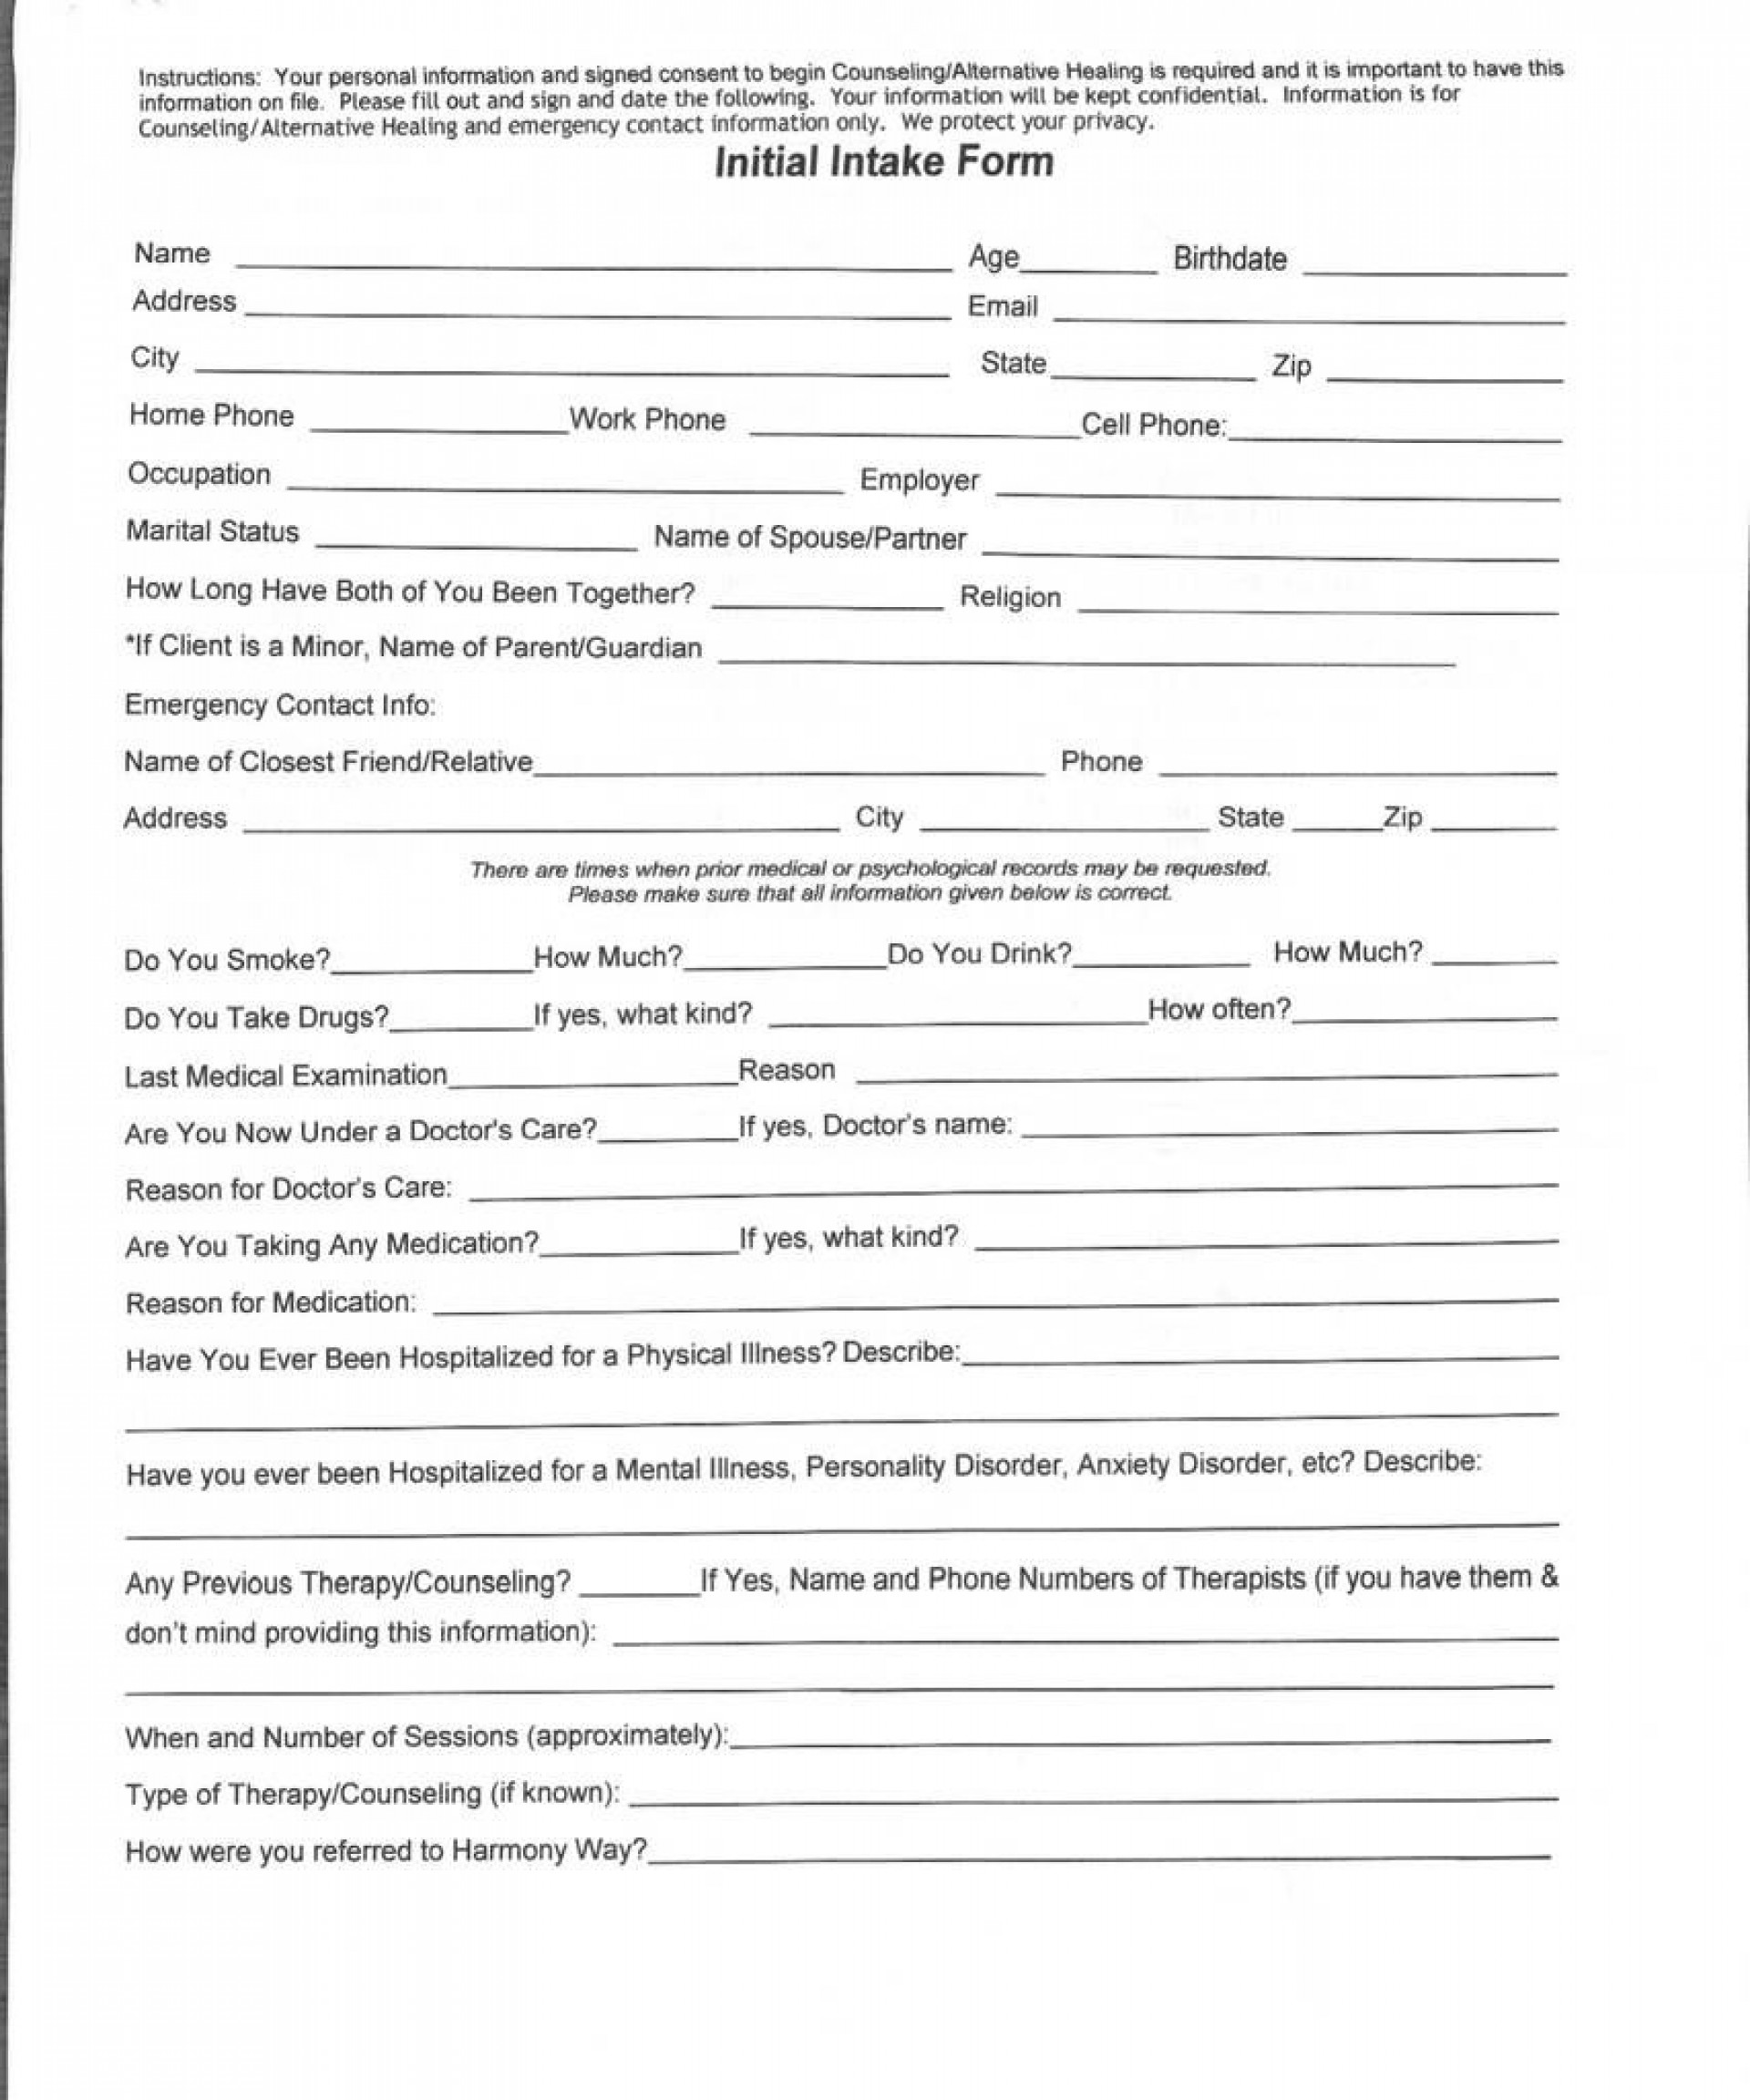 009 Unforgettable Medical History Form Template For Personal Training Highest Quality 1920